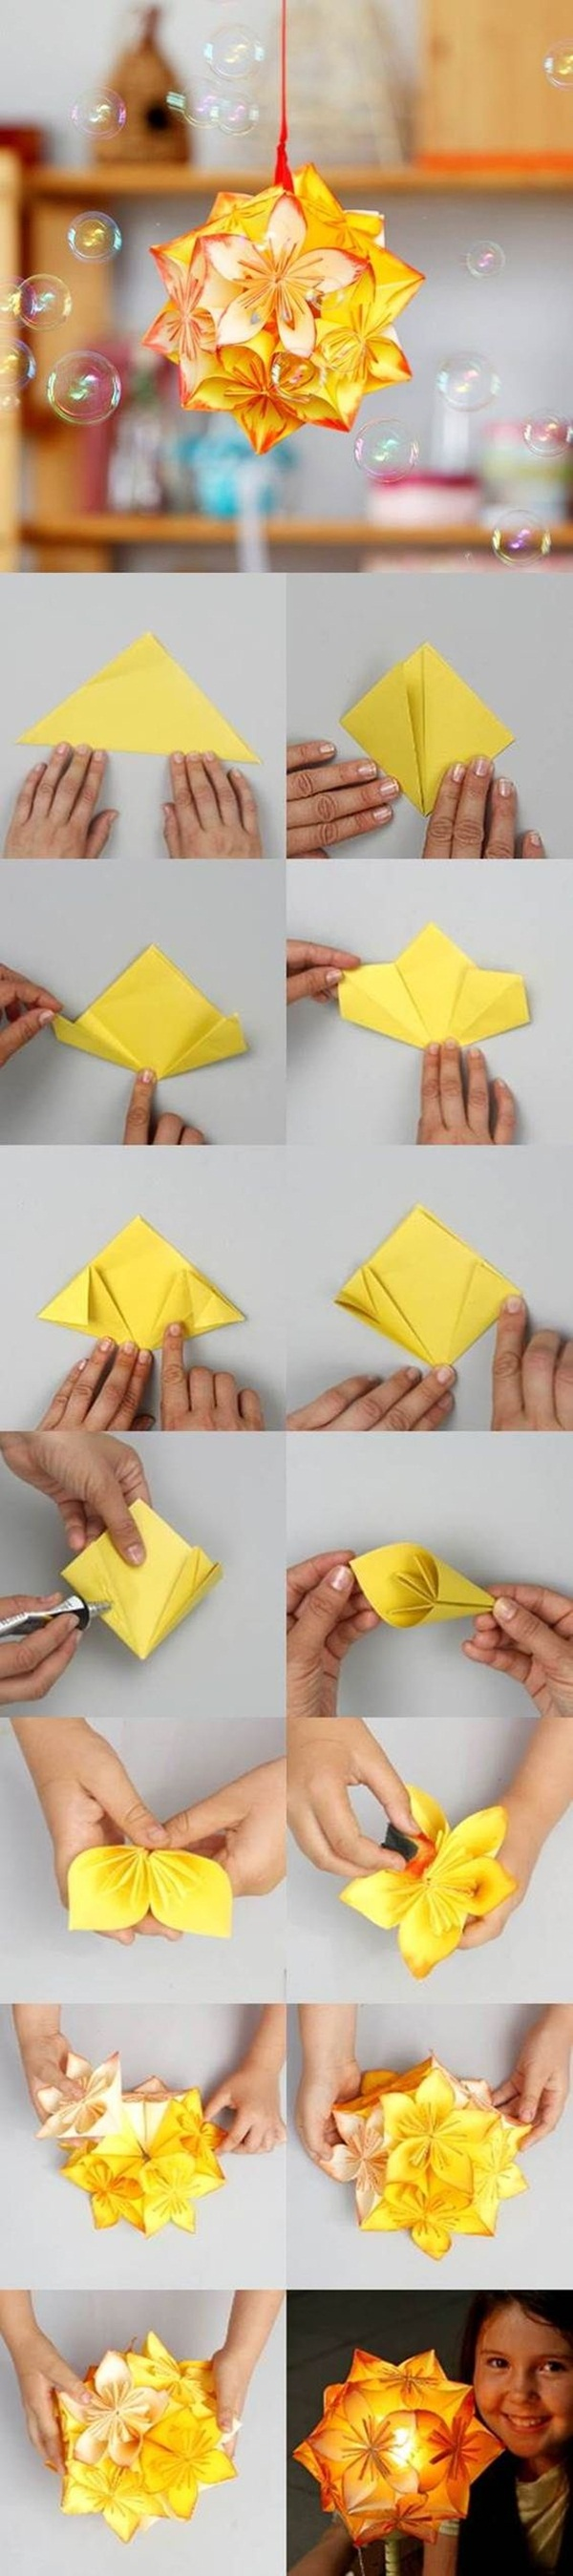 easy-origami-for-kids42